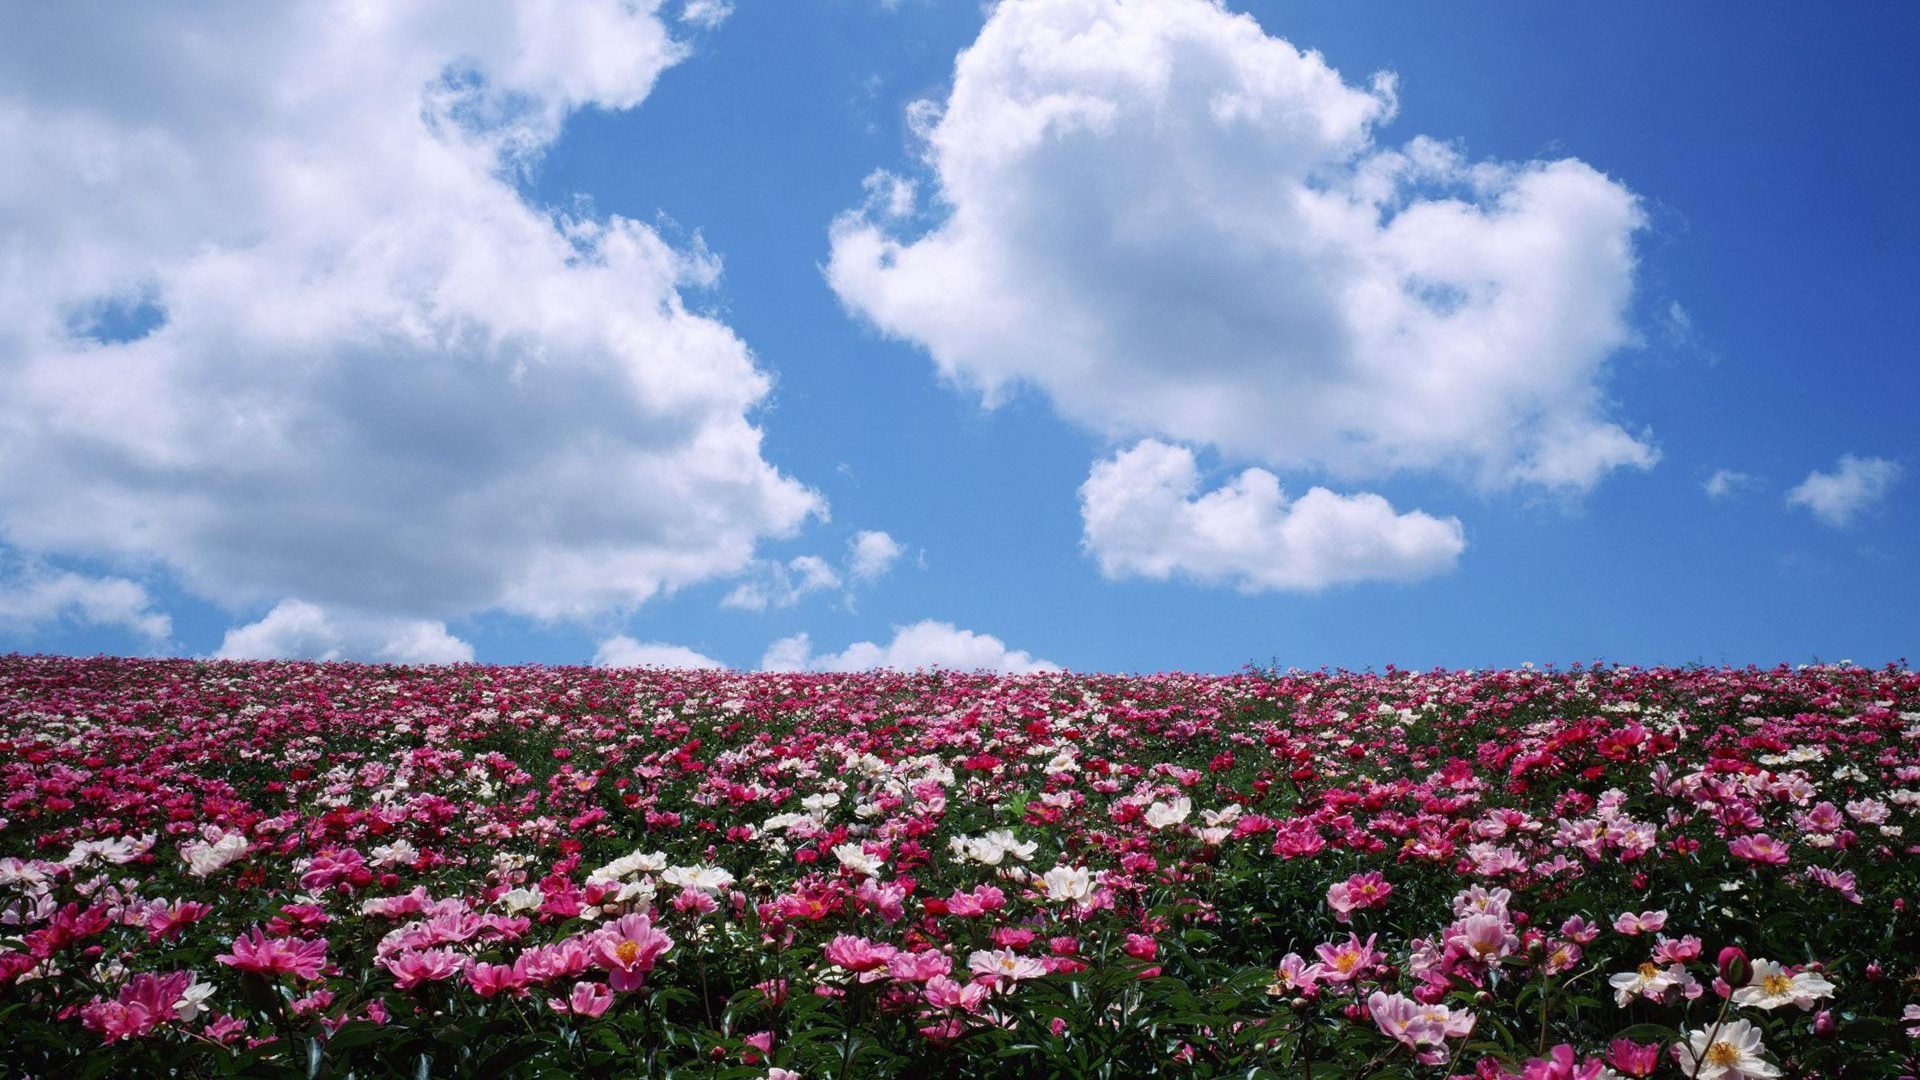 1920x1080 pink flower field sky clouds desktop pc and mac wa